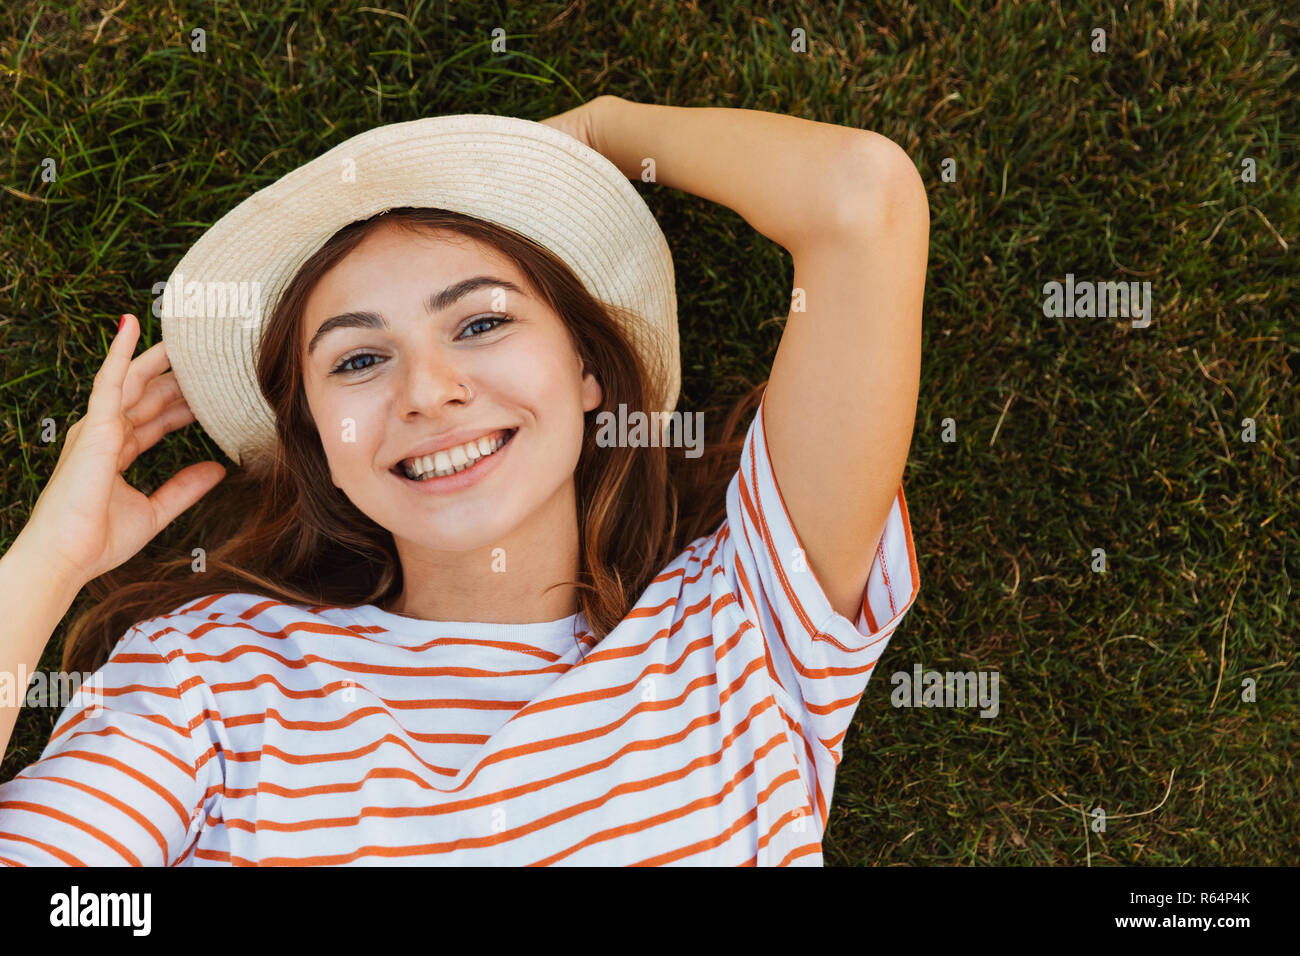 Top view of a delighted young girl in summer hat laying on a grass, grimacing - Stock Image